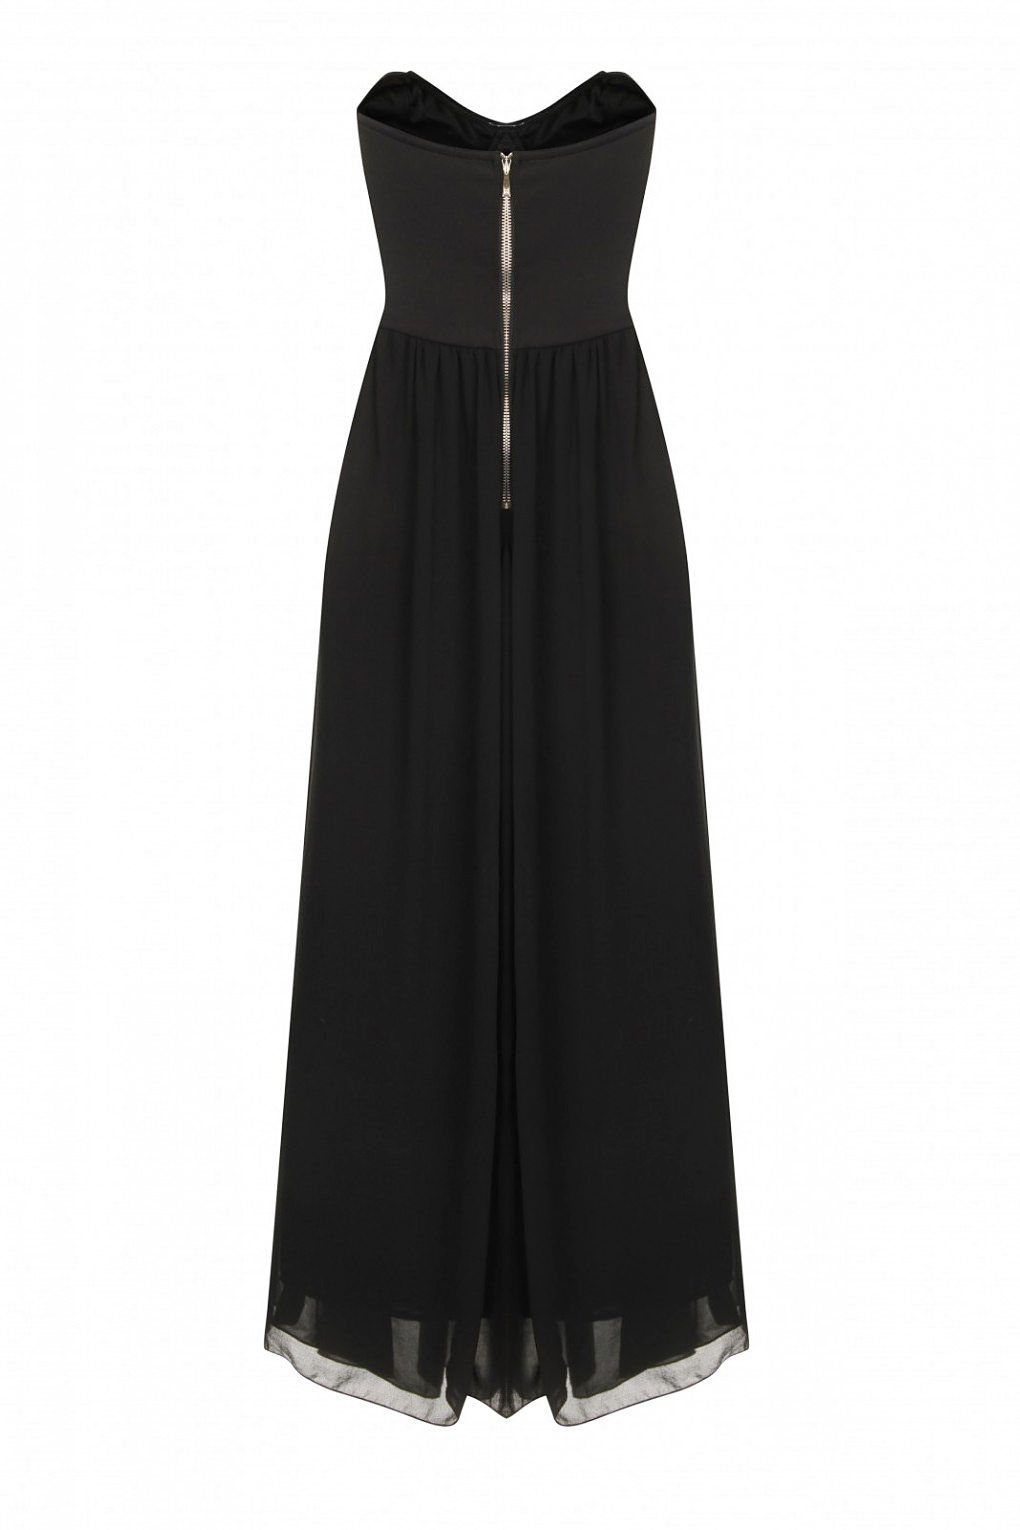 Black Lucy Chiffon Nazz Collection Dress